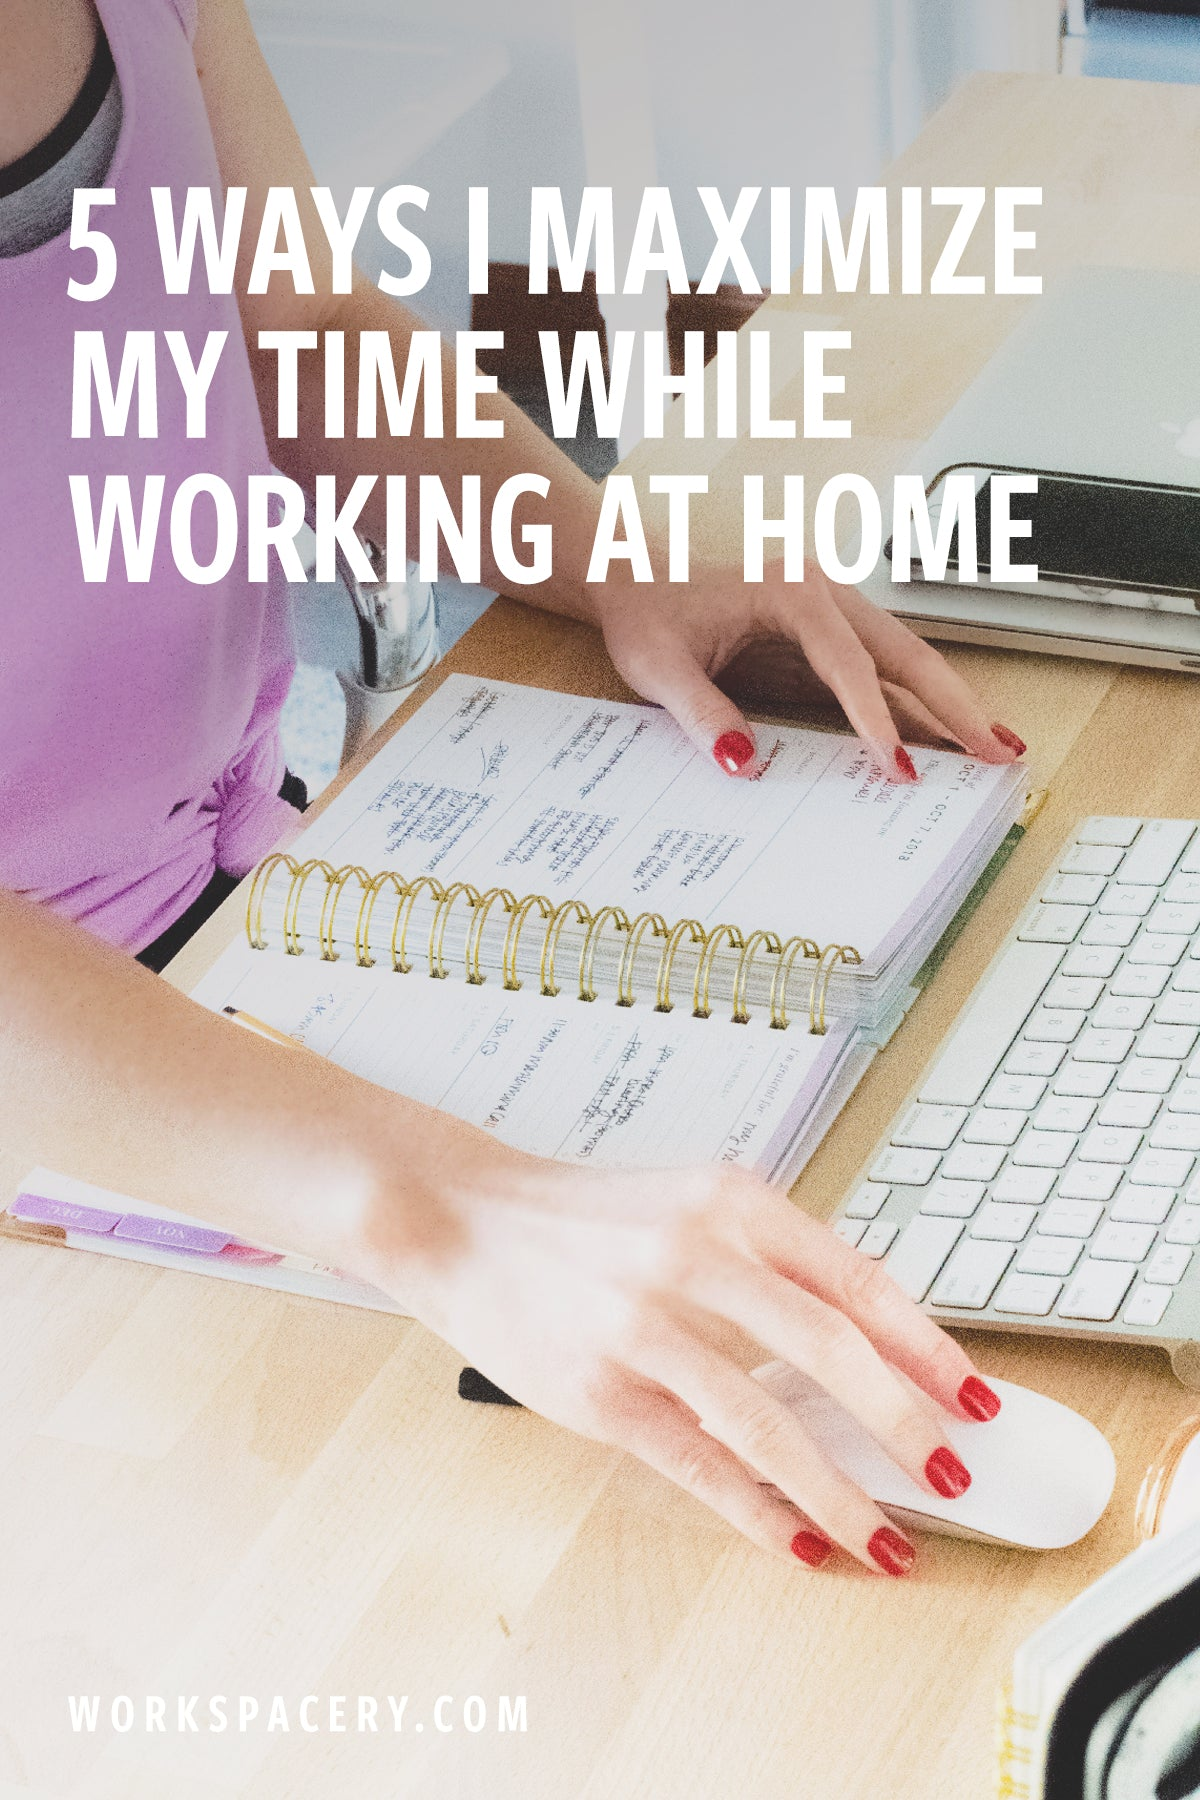 5 Ways I Maximize My Time While Working at Home